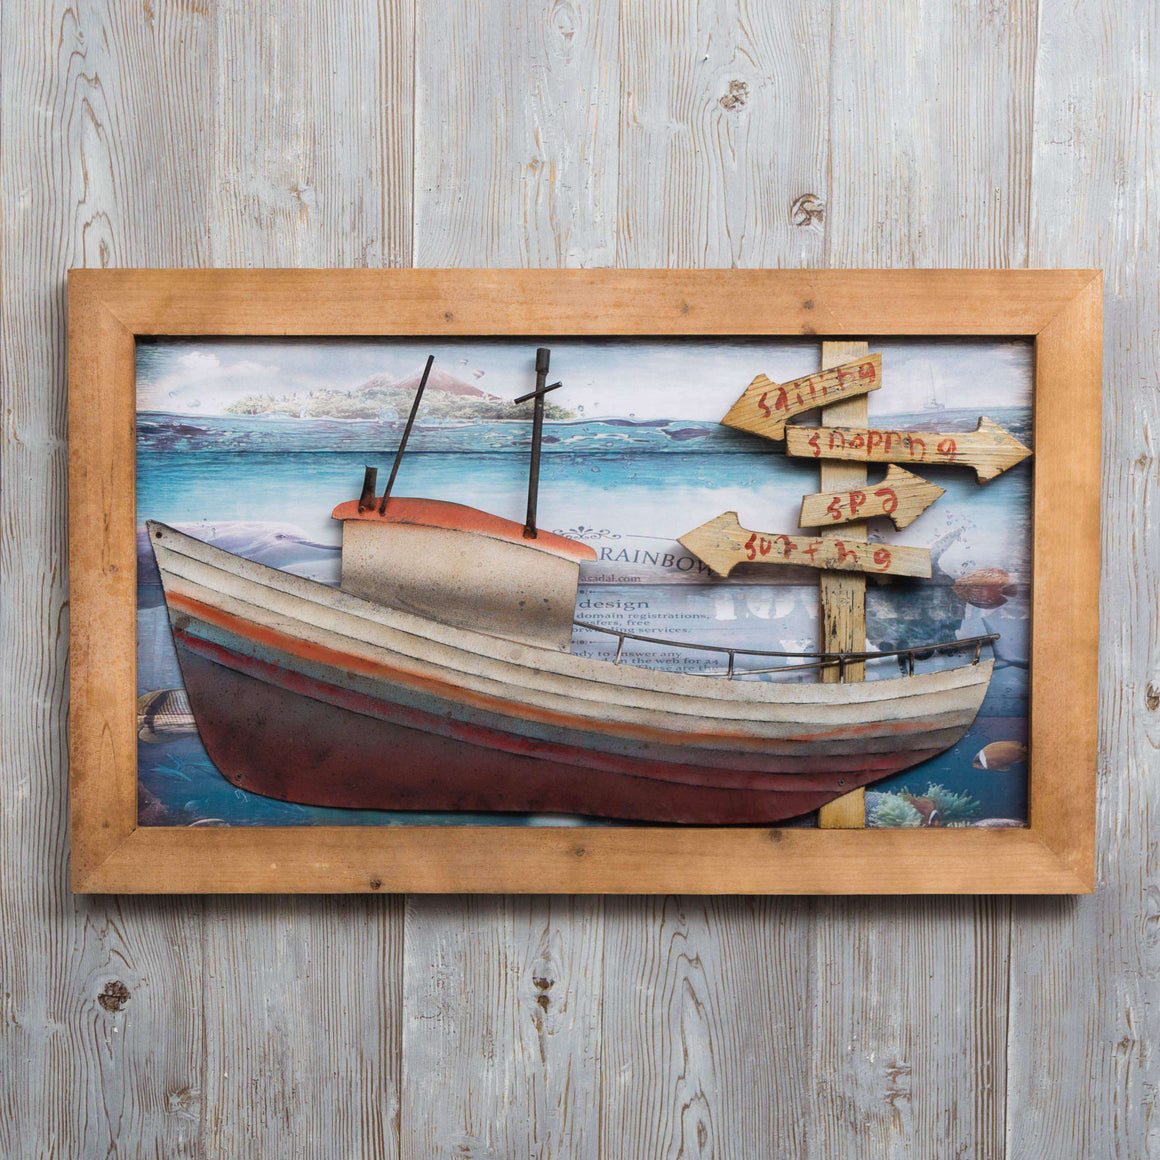 Boat Life - Print on Wood